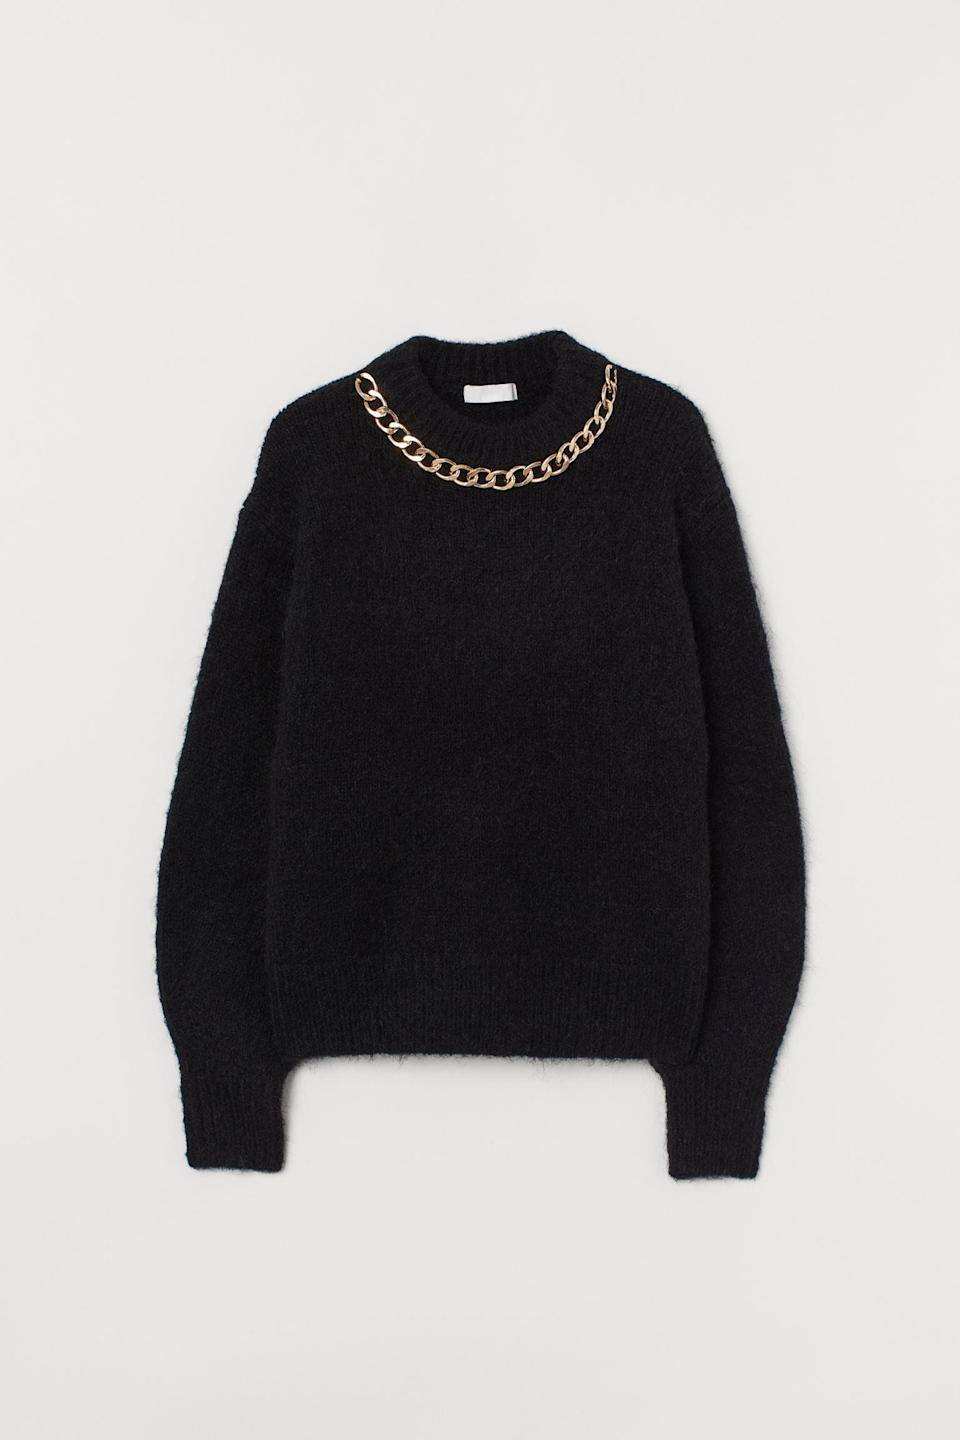 <p>Pair this <span>H&amp;M Chain-detail Sweater</span> ($17, originally $35) over a slip skirt for a chic date night look.</p>